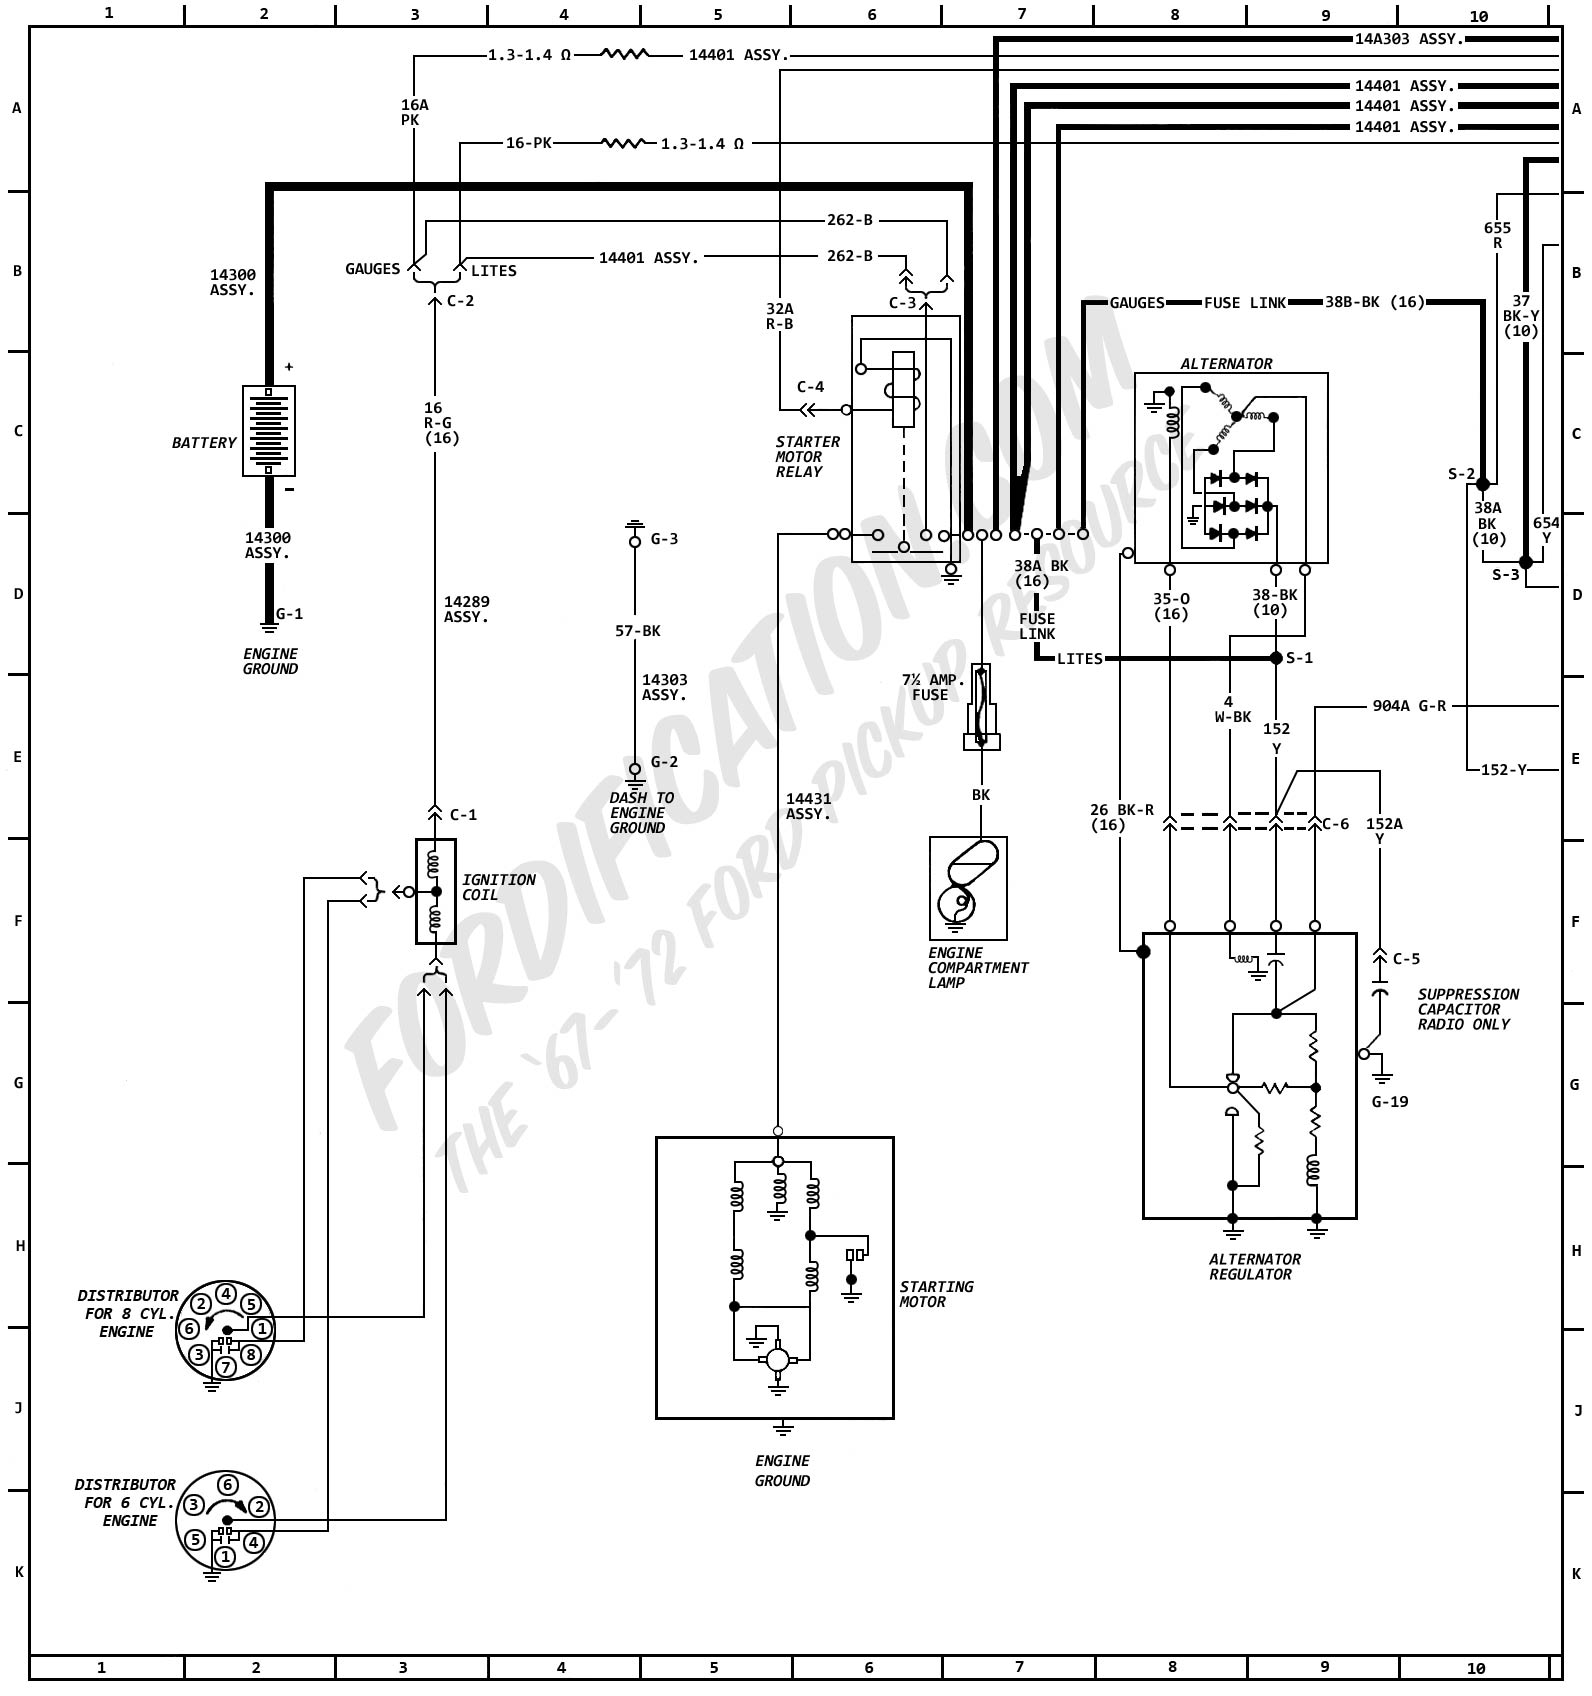 1972MasterWiring_01 1972 ford truck wiring diagrams fordification com 1970 Ford F-250 Wiring Diagram at soozxer.org